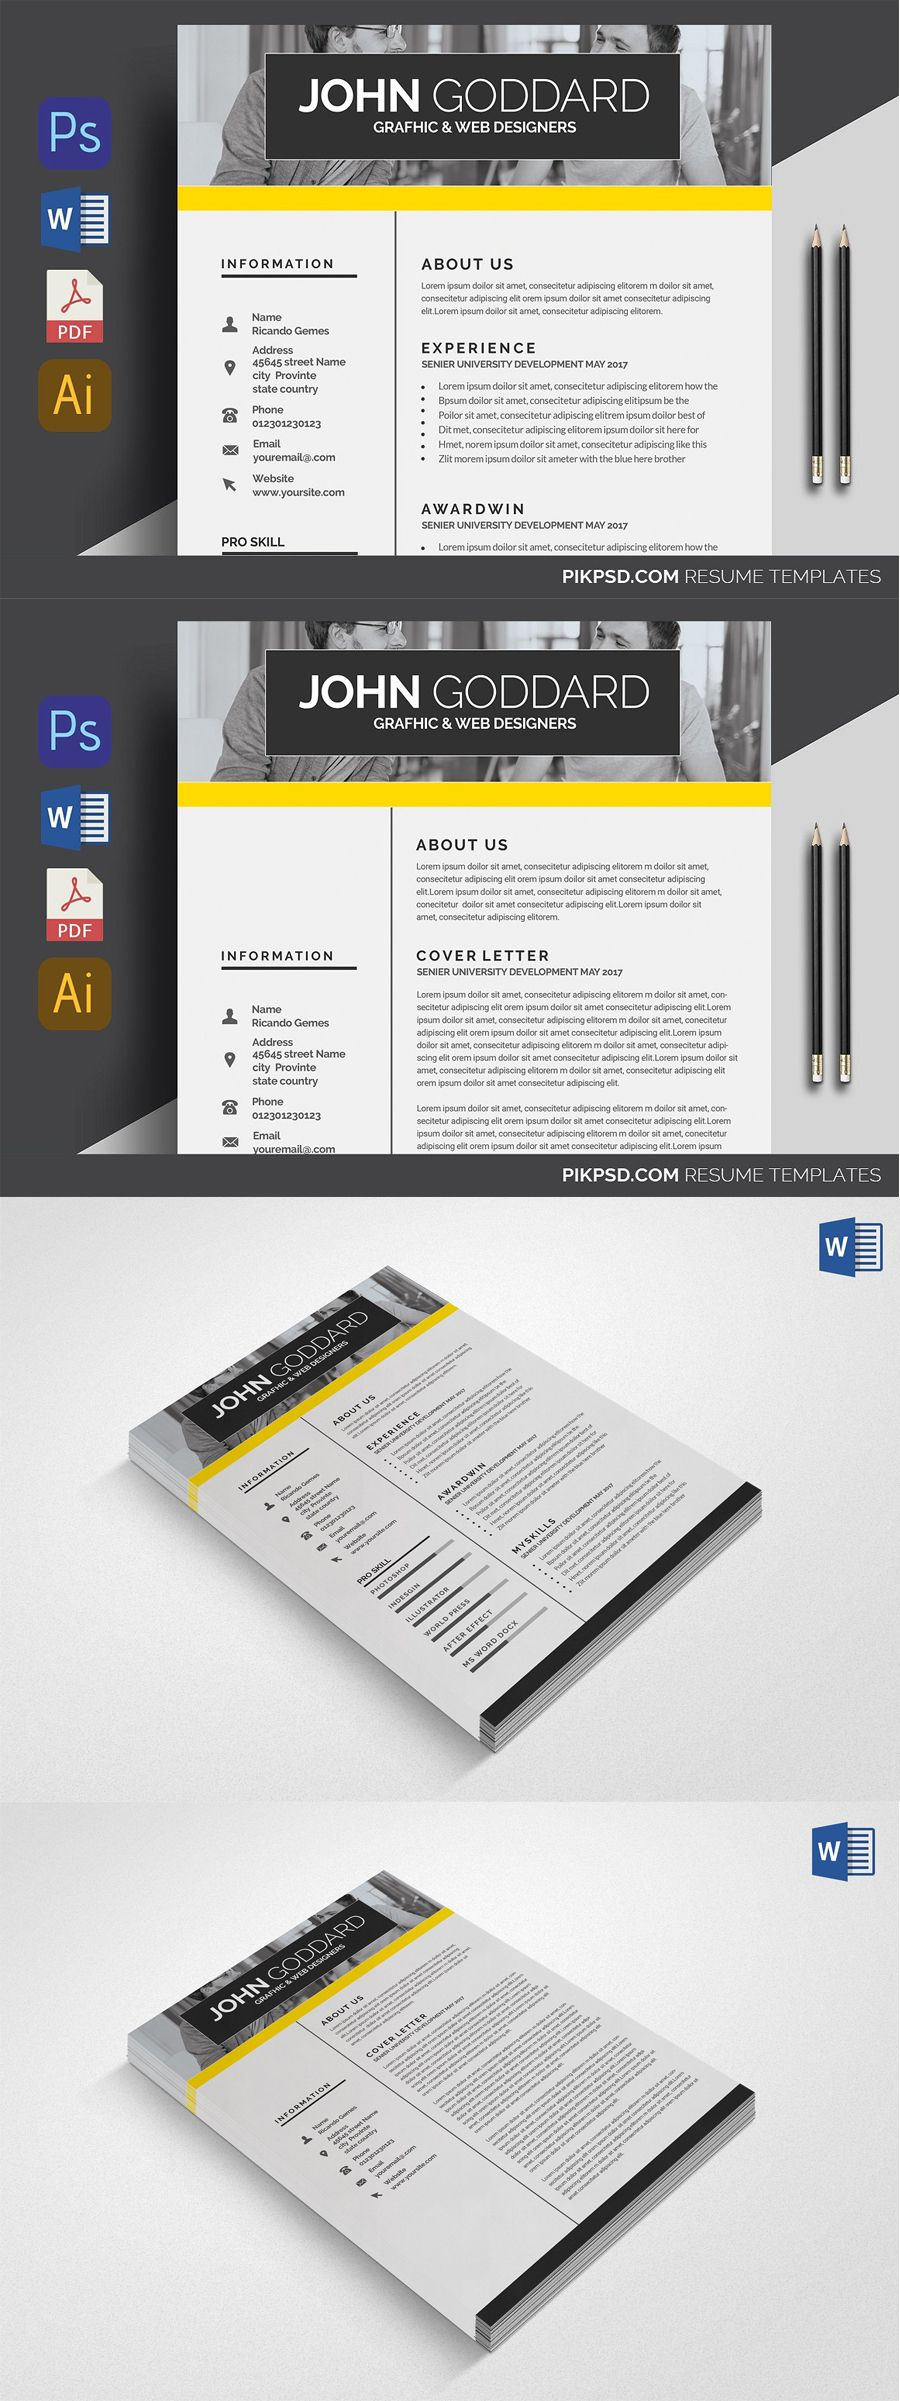 Resume/CV Templates PSD Resume templates, Unique resume